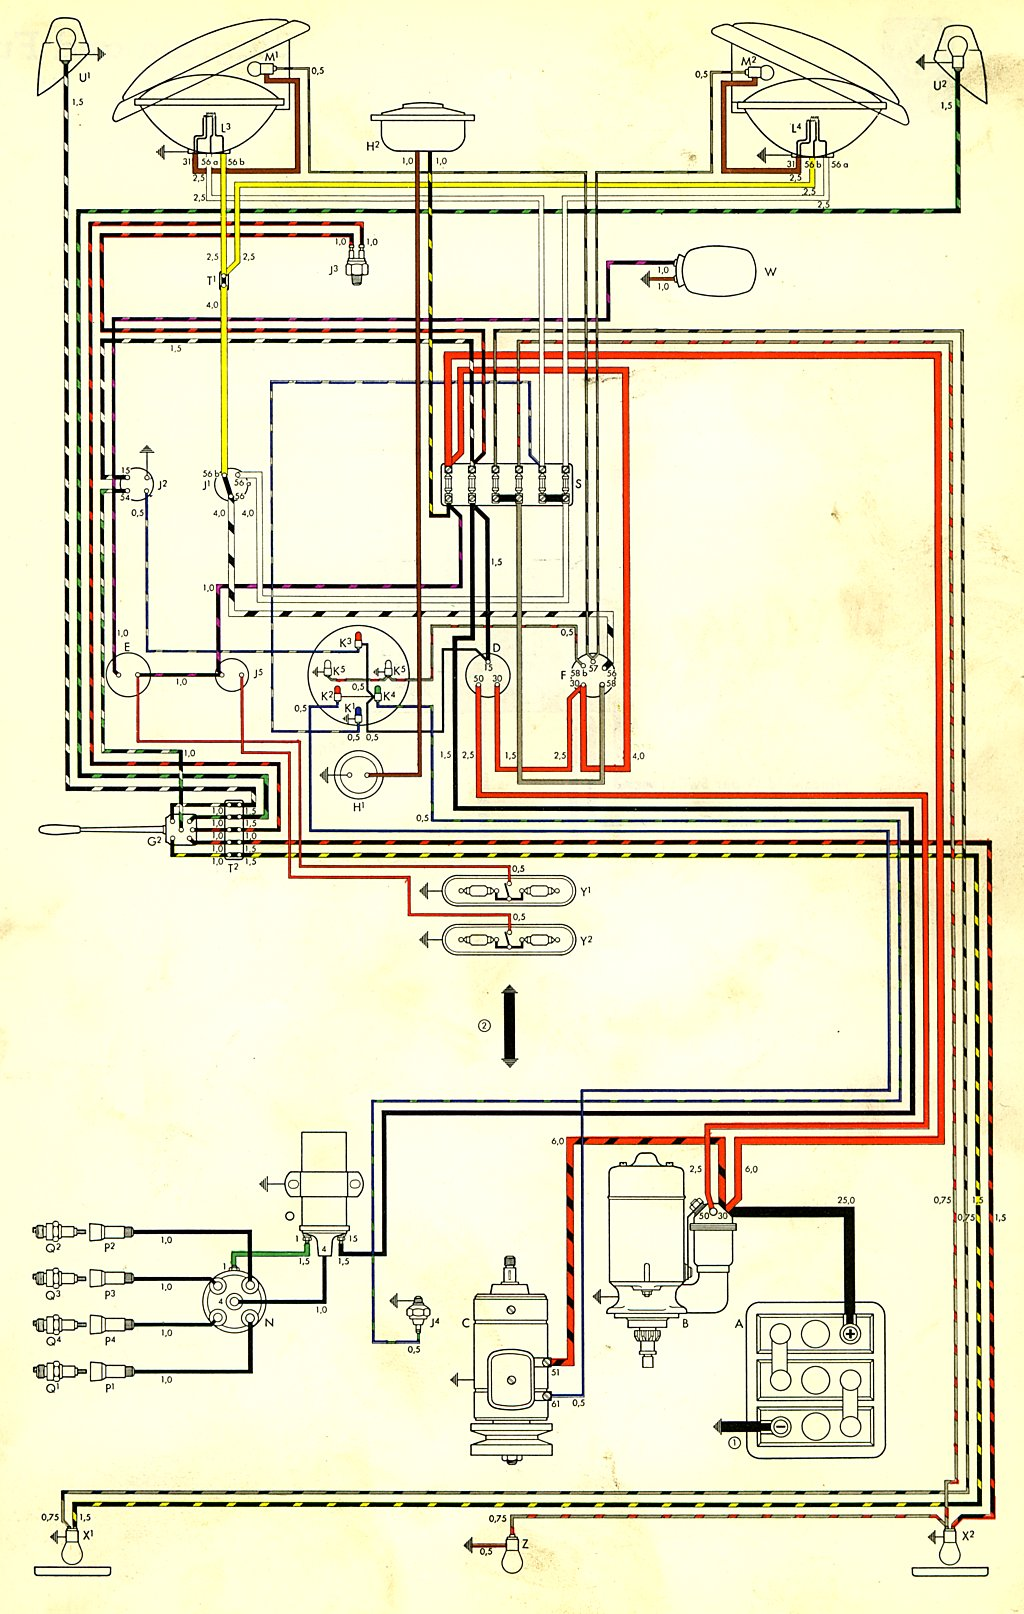 VW Bus Wiring Diagram on vw beetle fuel gauge